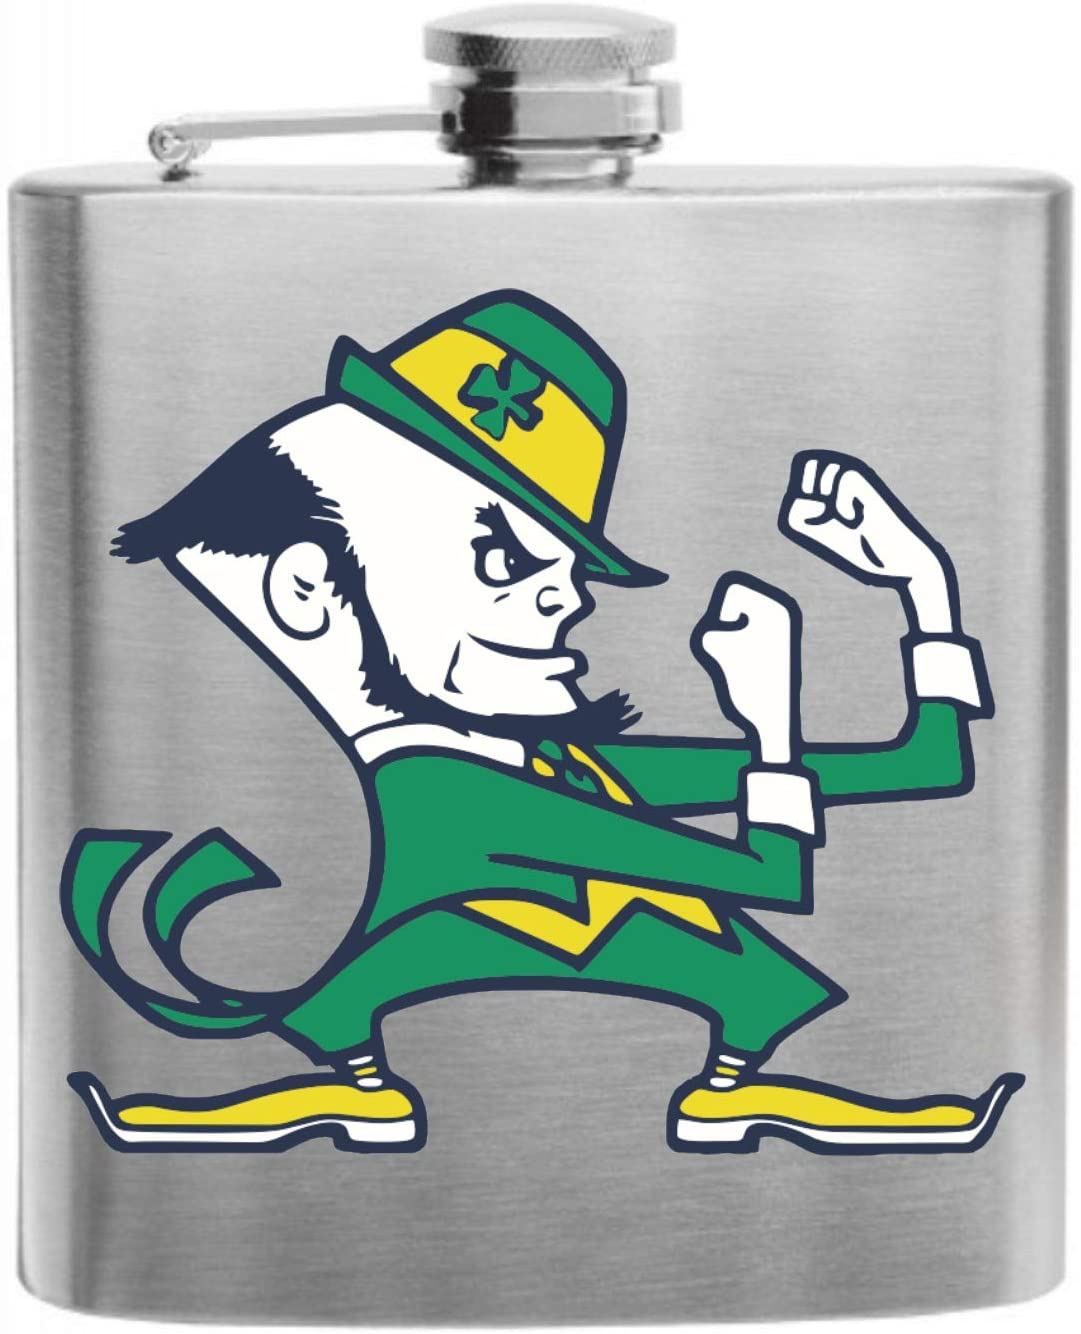 Fighting Irish Full Color Funny Fighting Leprechaun Custom Printed Stainless Steel Alcohol Hip Flask, 6 Oz. Stainless Steel